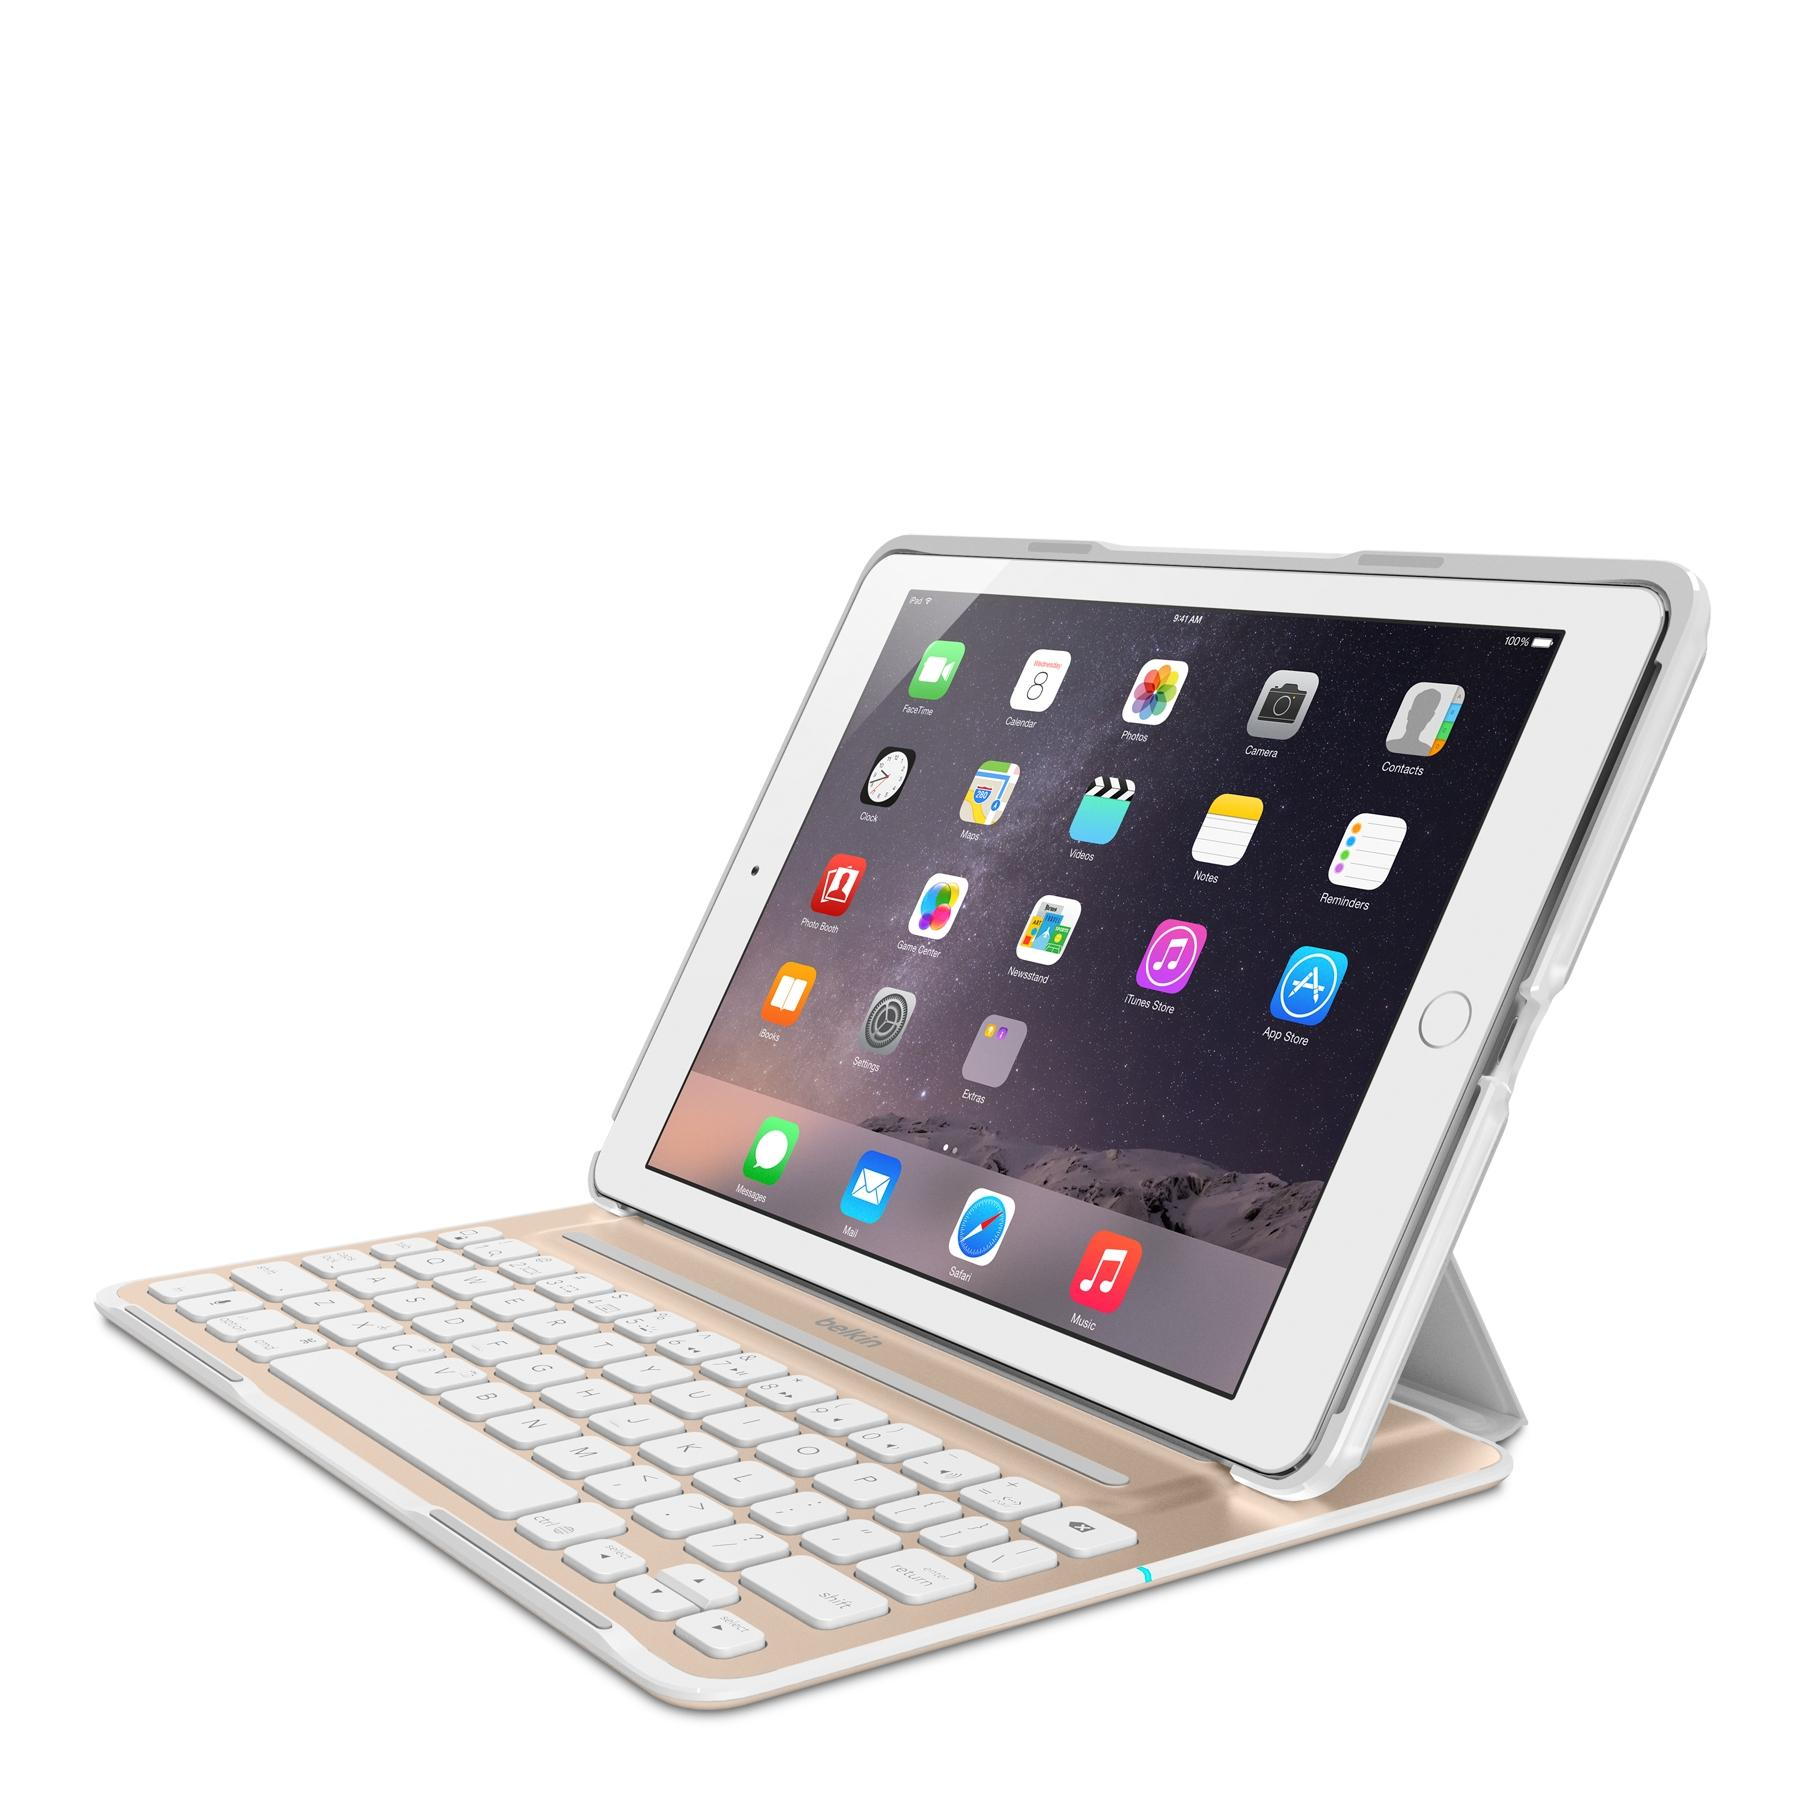 belkin qode ultimate pro keyboard case for ipad air 2 computers accessories. Black Bedroom Furniture Sets. Home Design Ideas